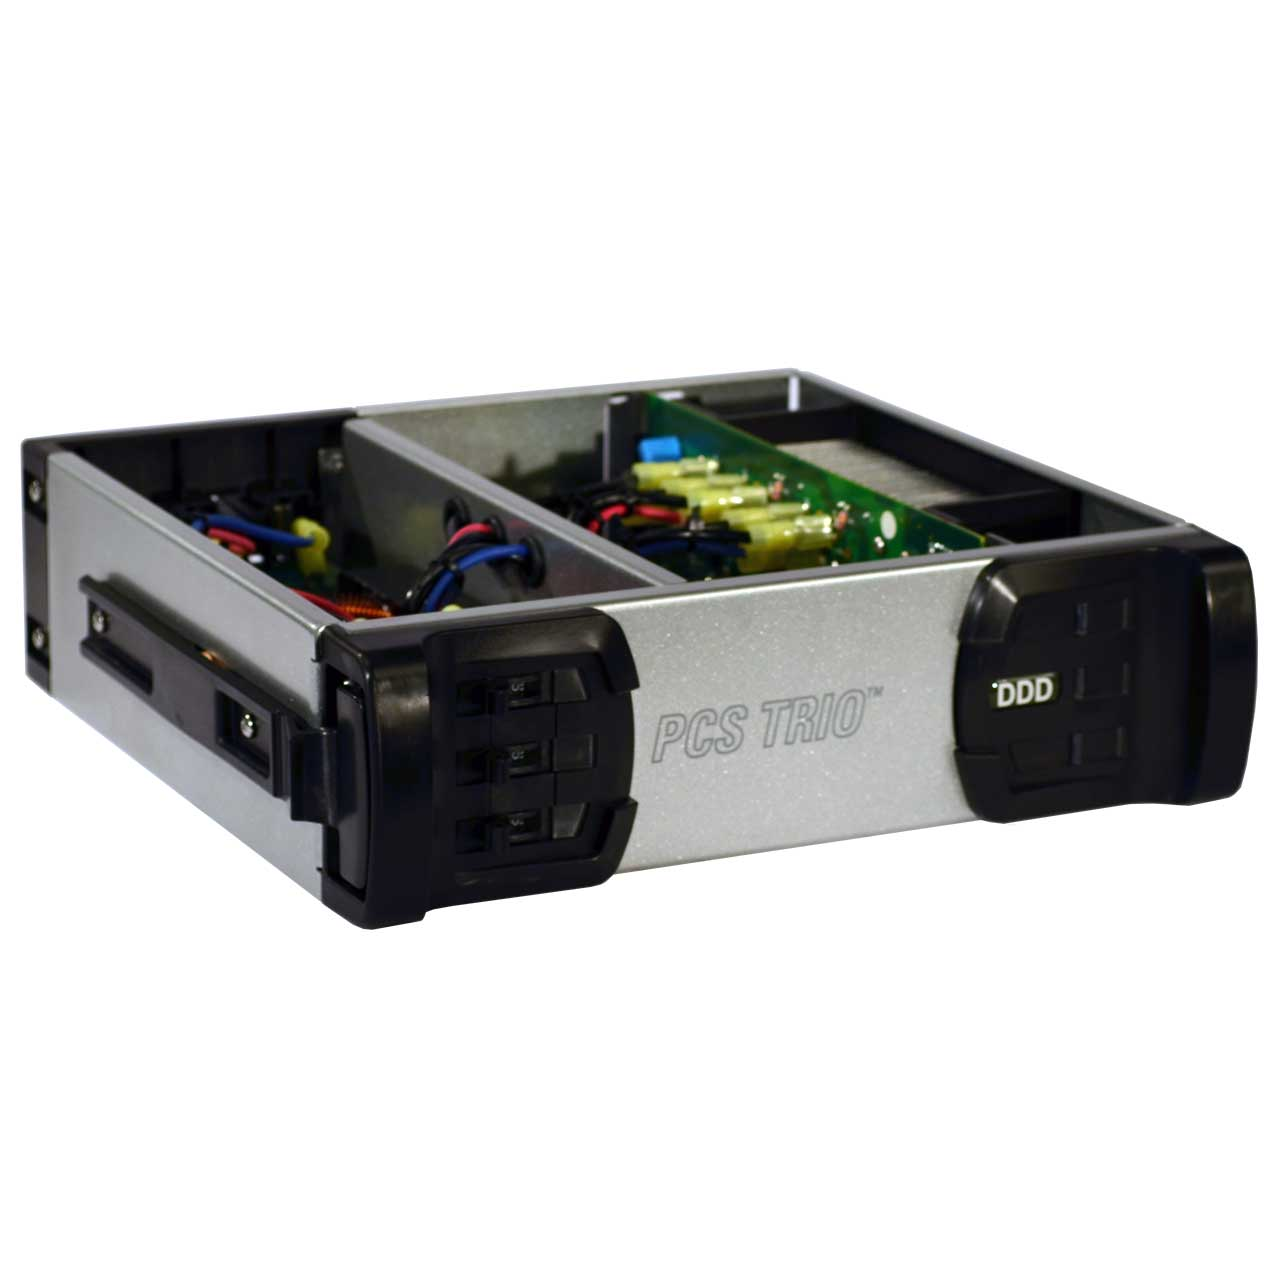 PCS TRIO™ Triple Dimmer Module